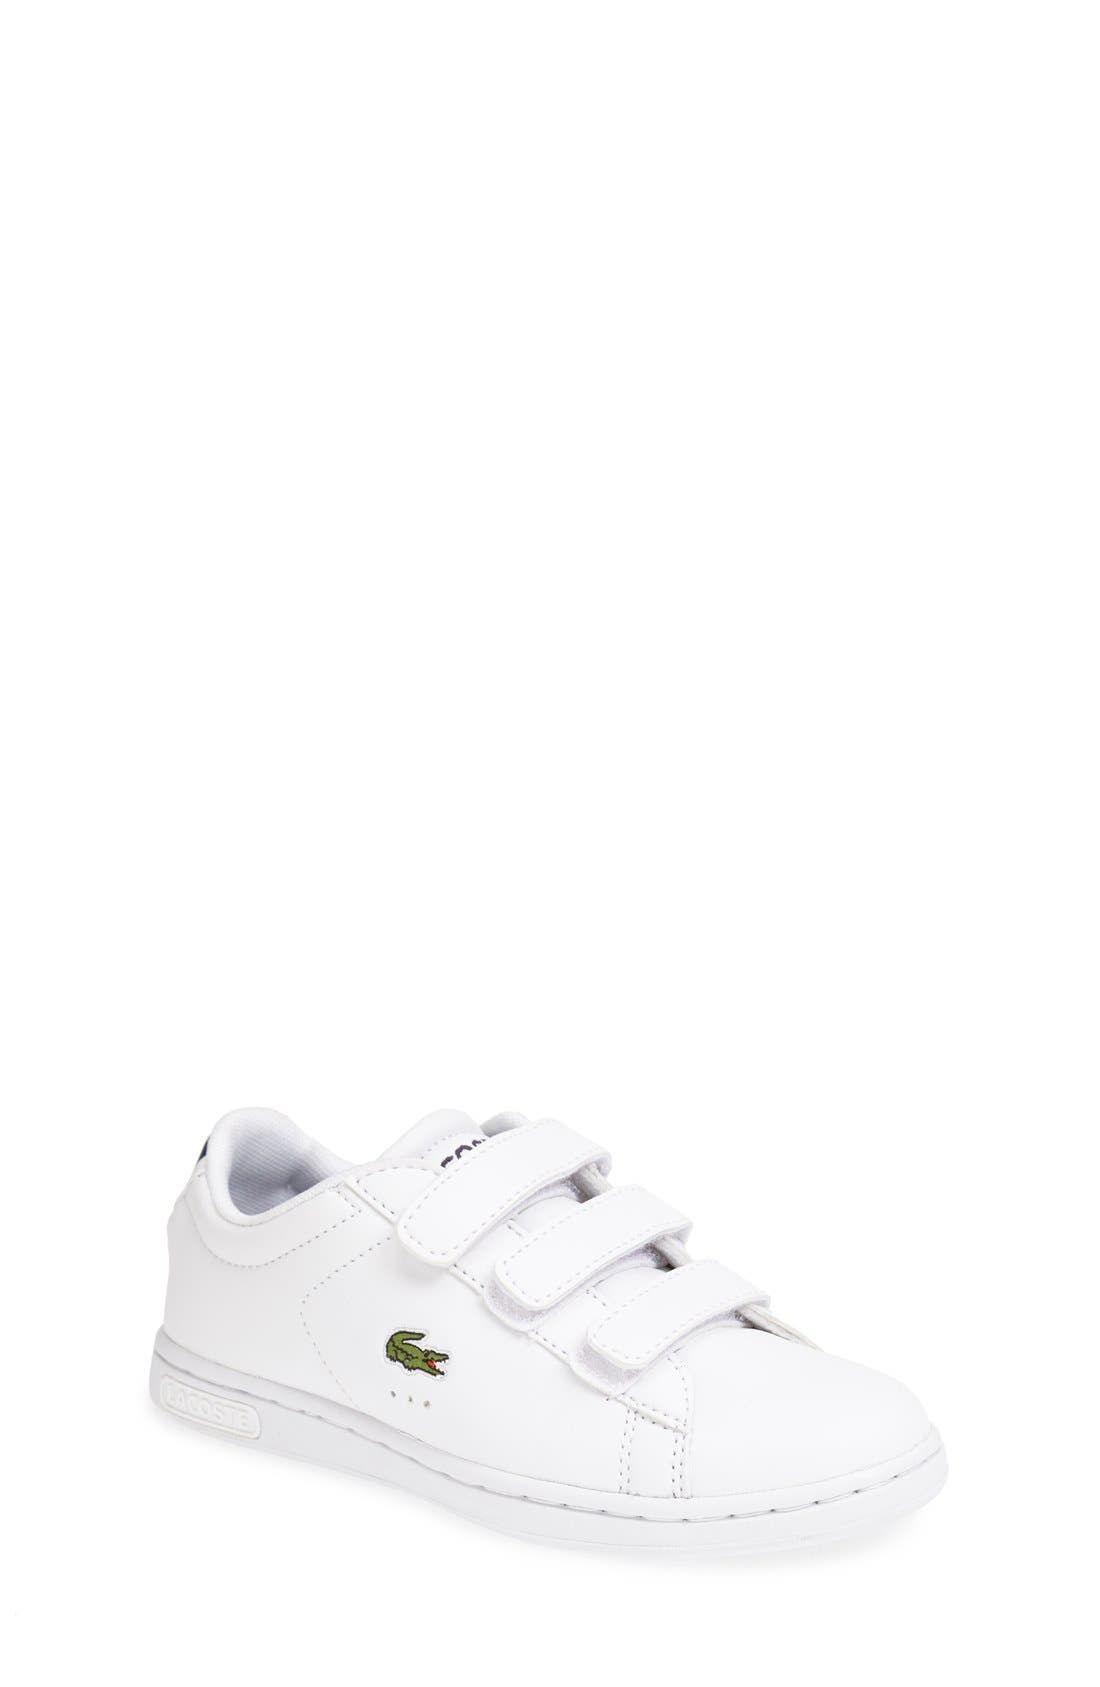 Main Image - Lacoste 'Carnaby' Sneaker (Toddler & Little Kid)